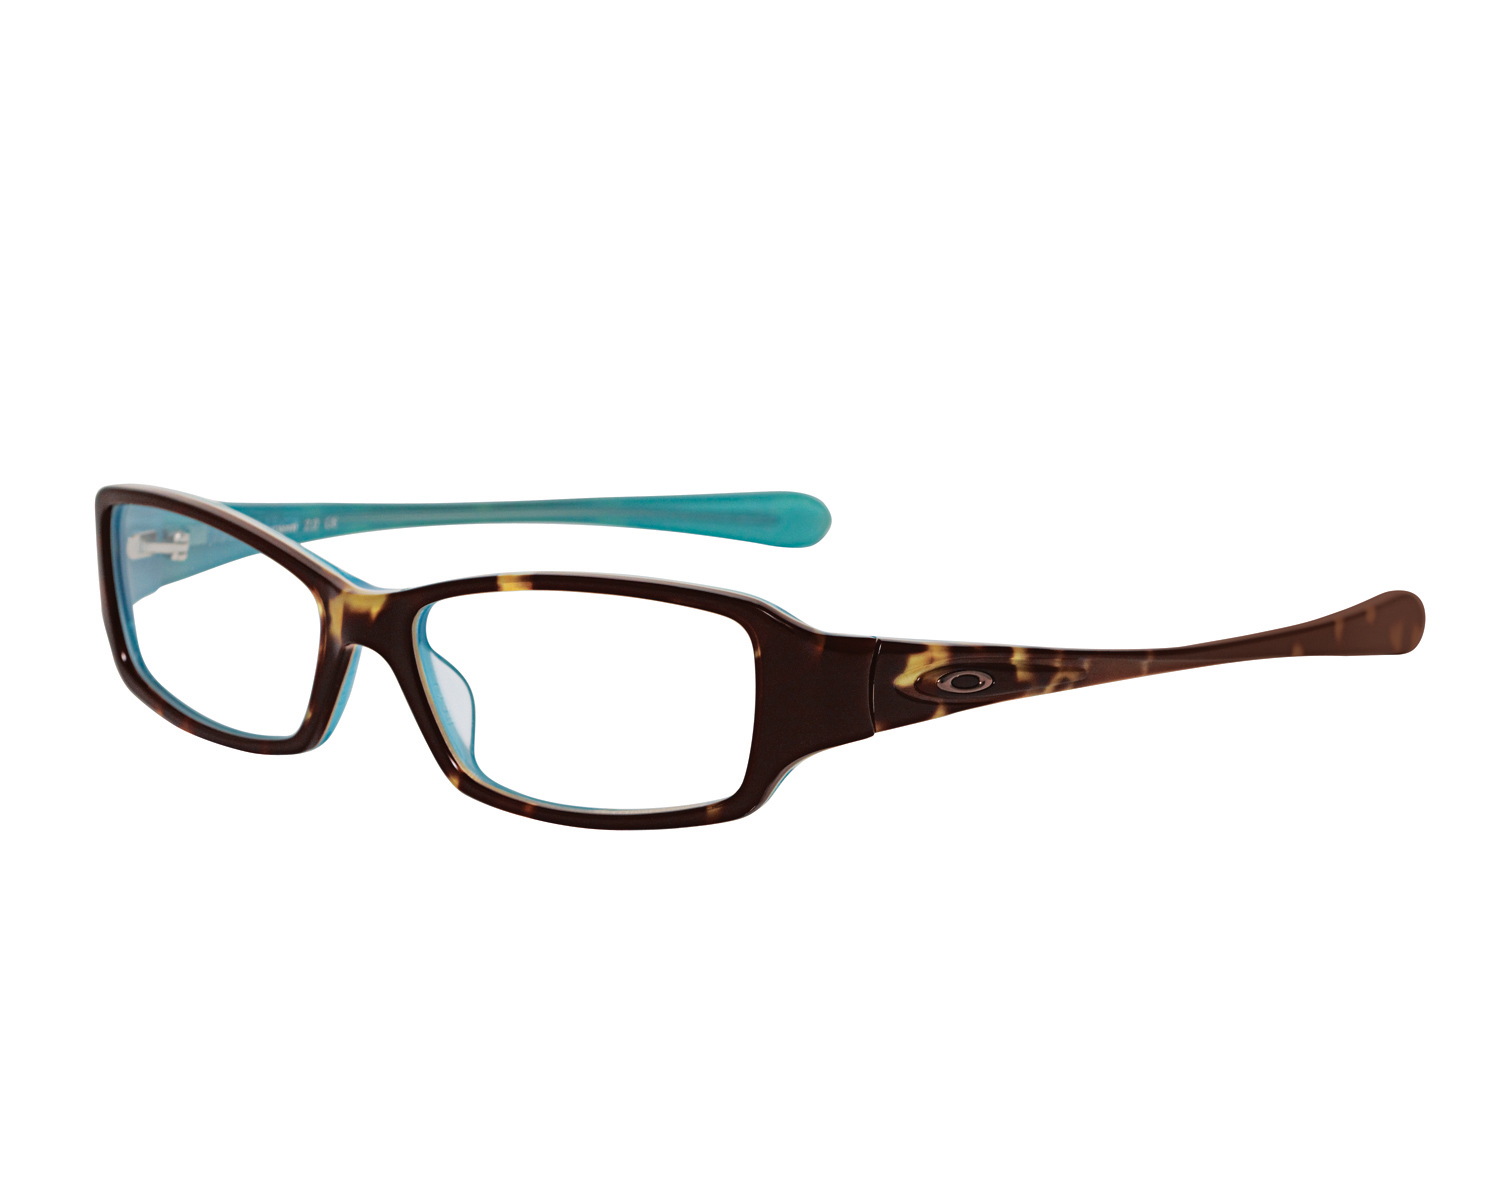 972dc70010 Oakley Womens Prescription Eyewear « Heritage Malta